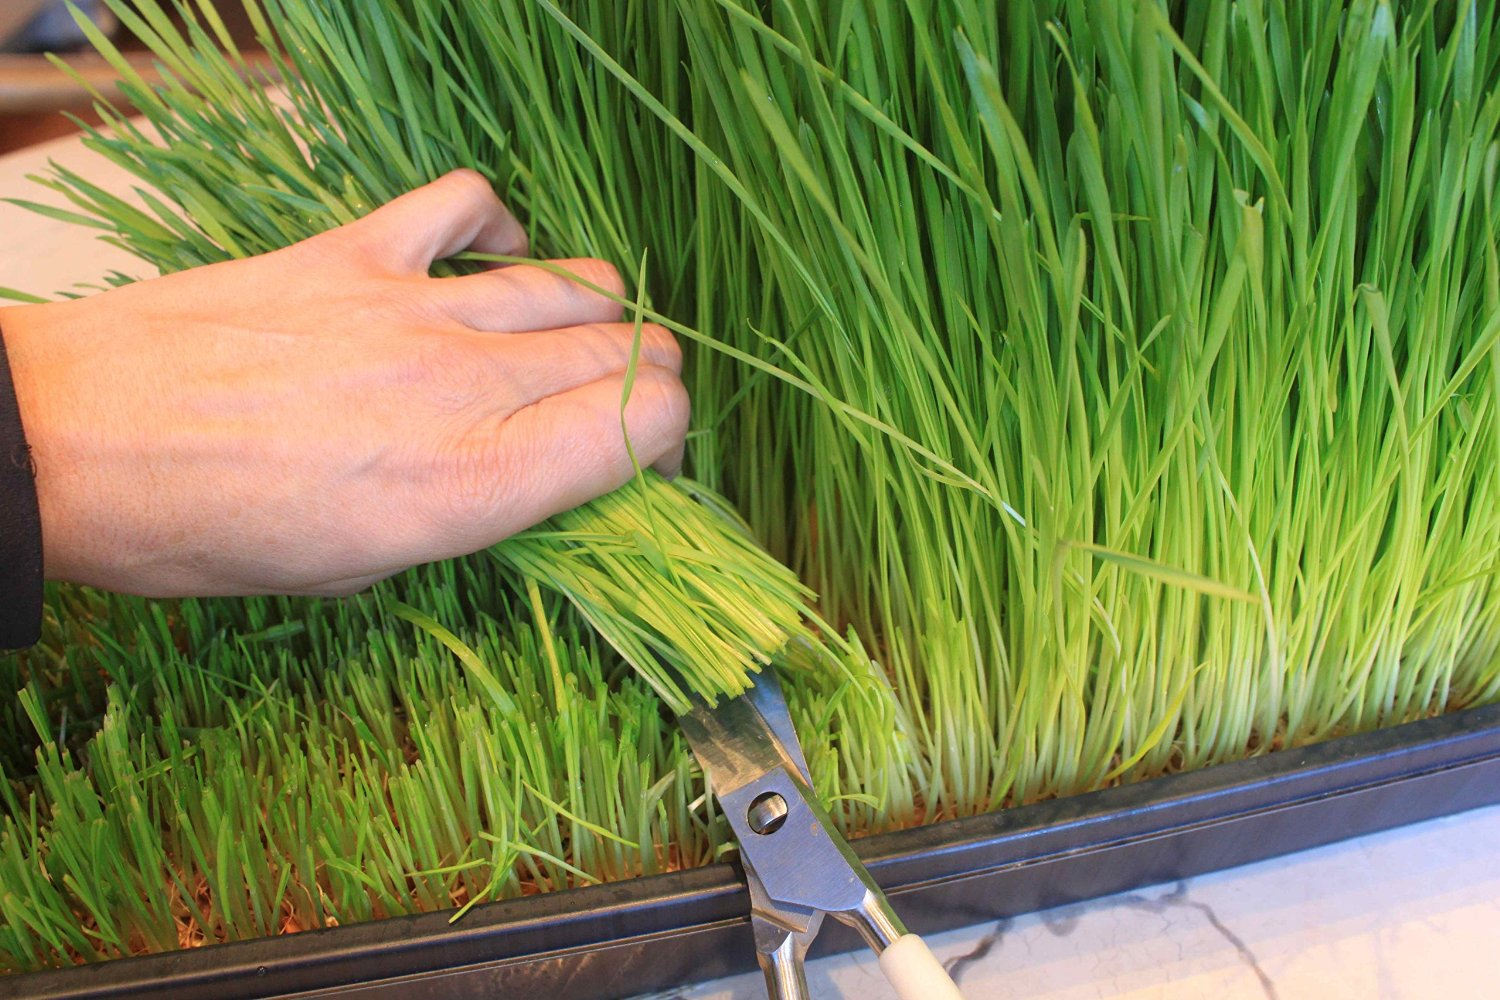 Grow Your Own Wheatgrass for Juicing